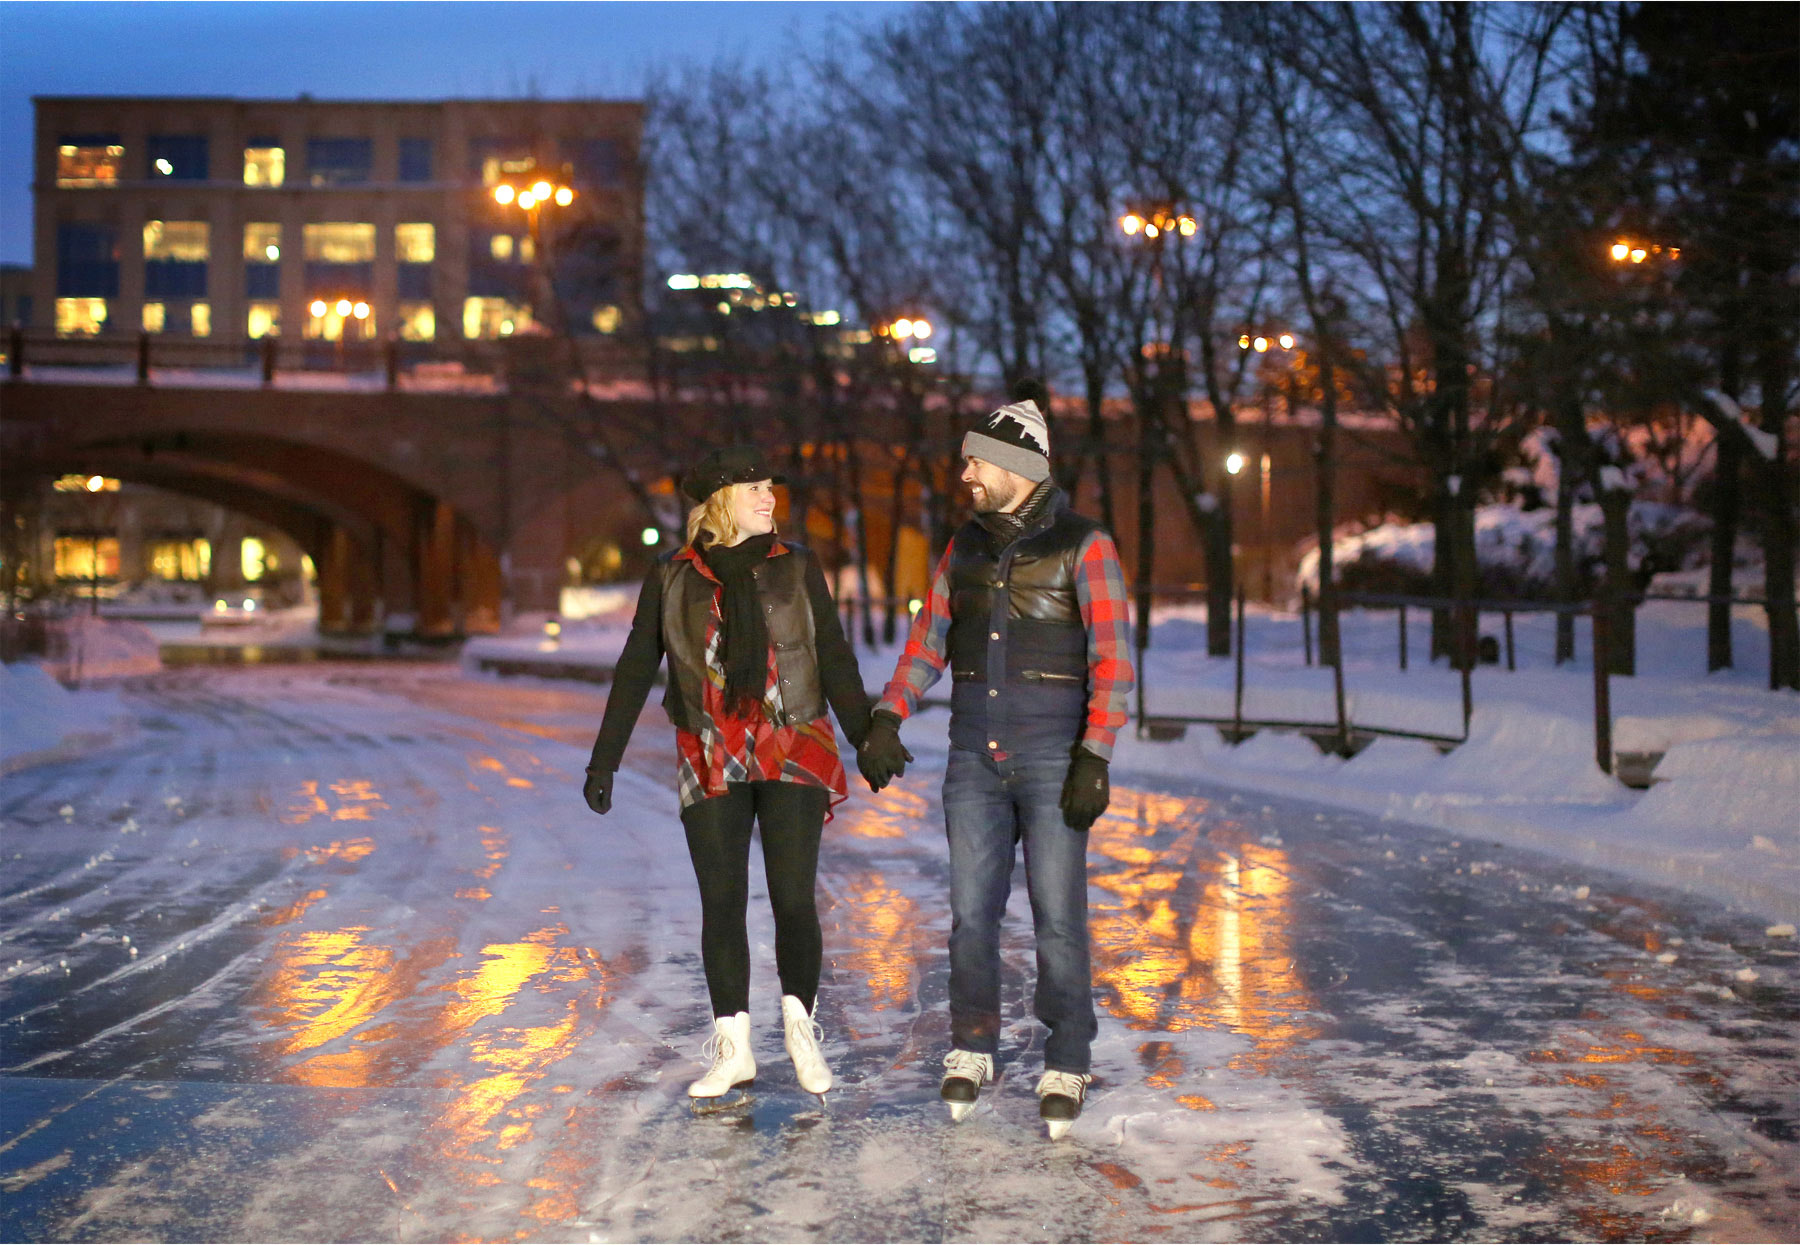 08-Edina-Minnesota-Wedding-Photographer-by-Andrew-Vick-Photography-Winter-Engagement-Bride-Groom-Snow-Bridge-Night-Lights-Ice-Skating-Frozen-Pond-Heather-and-Rob.jpg